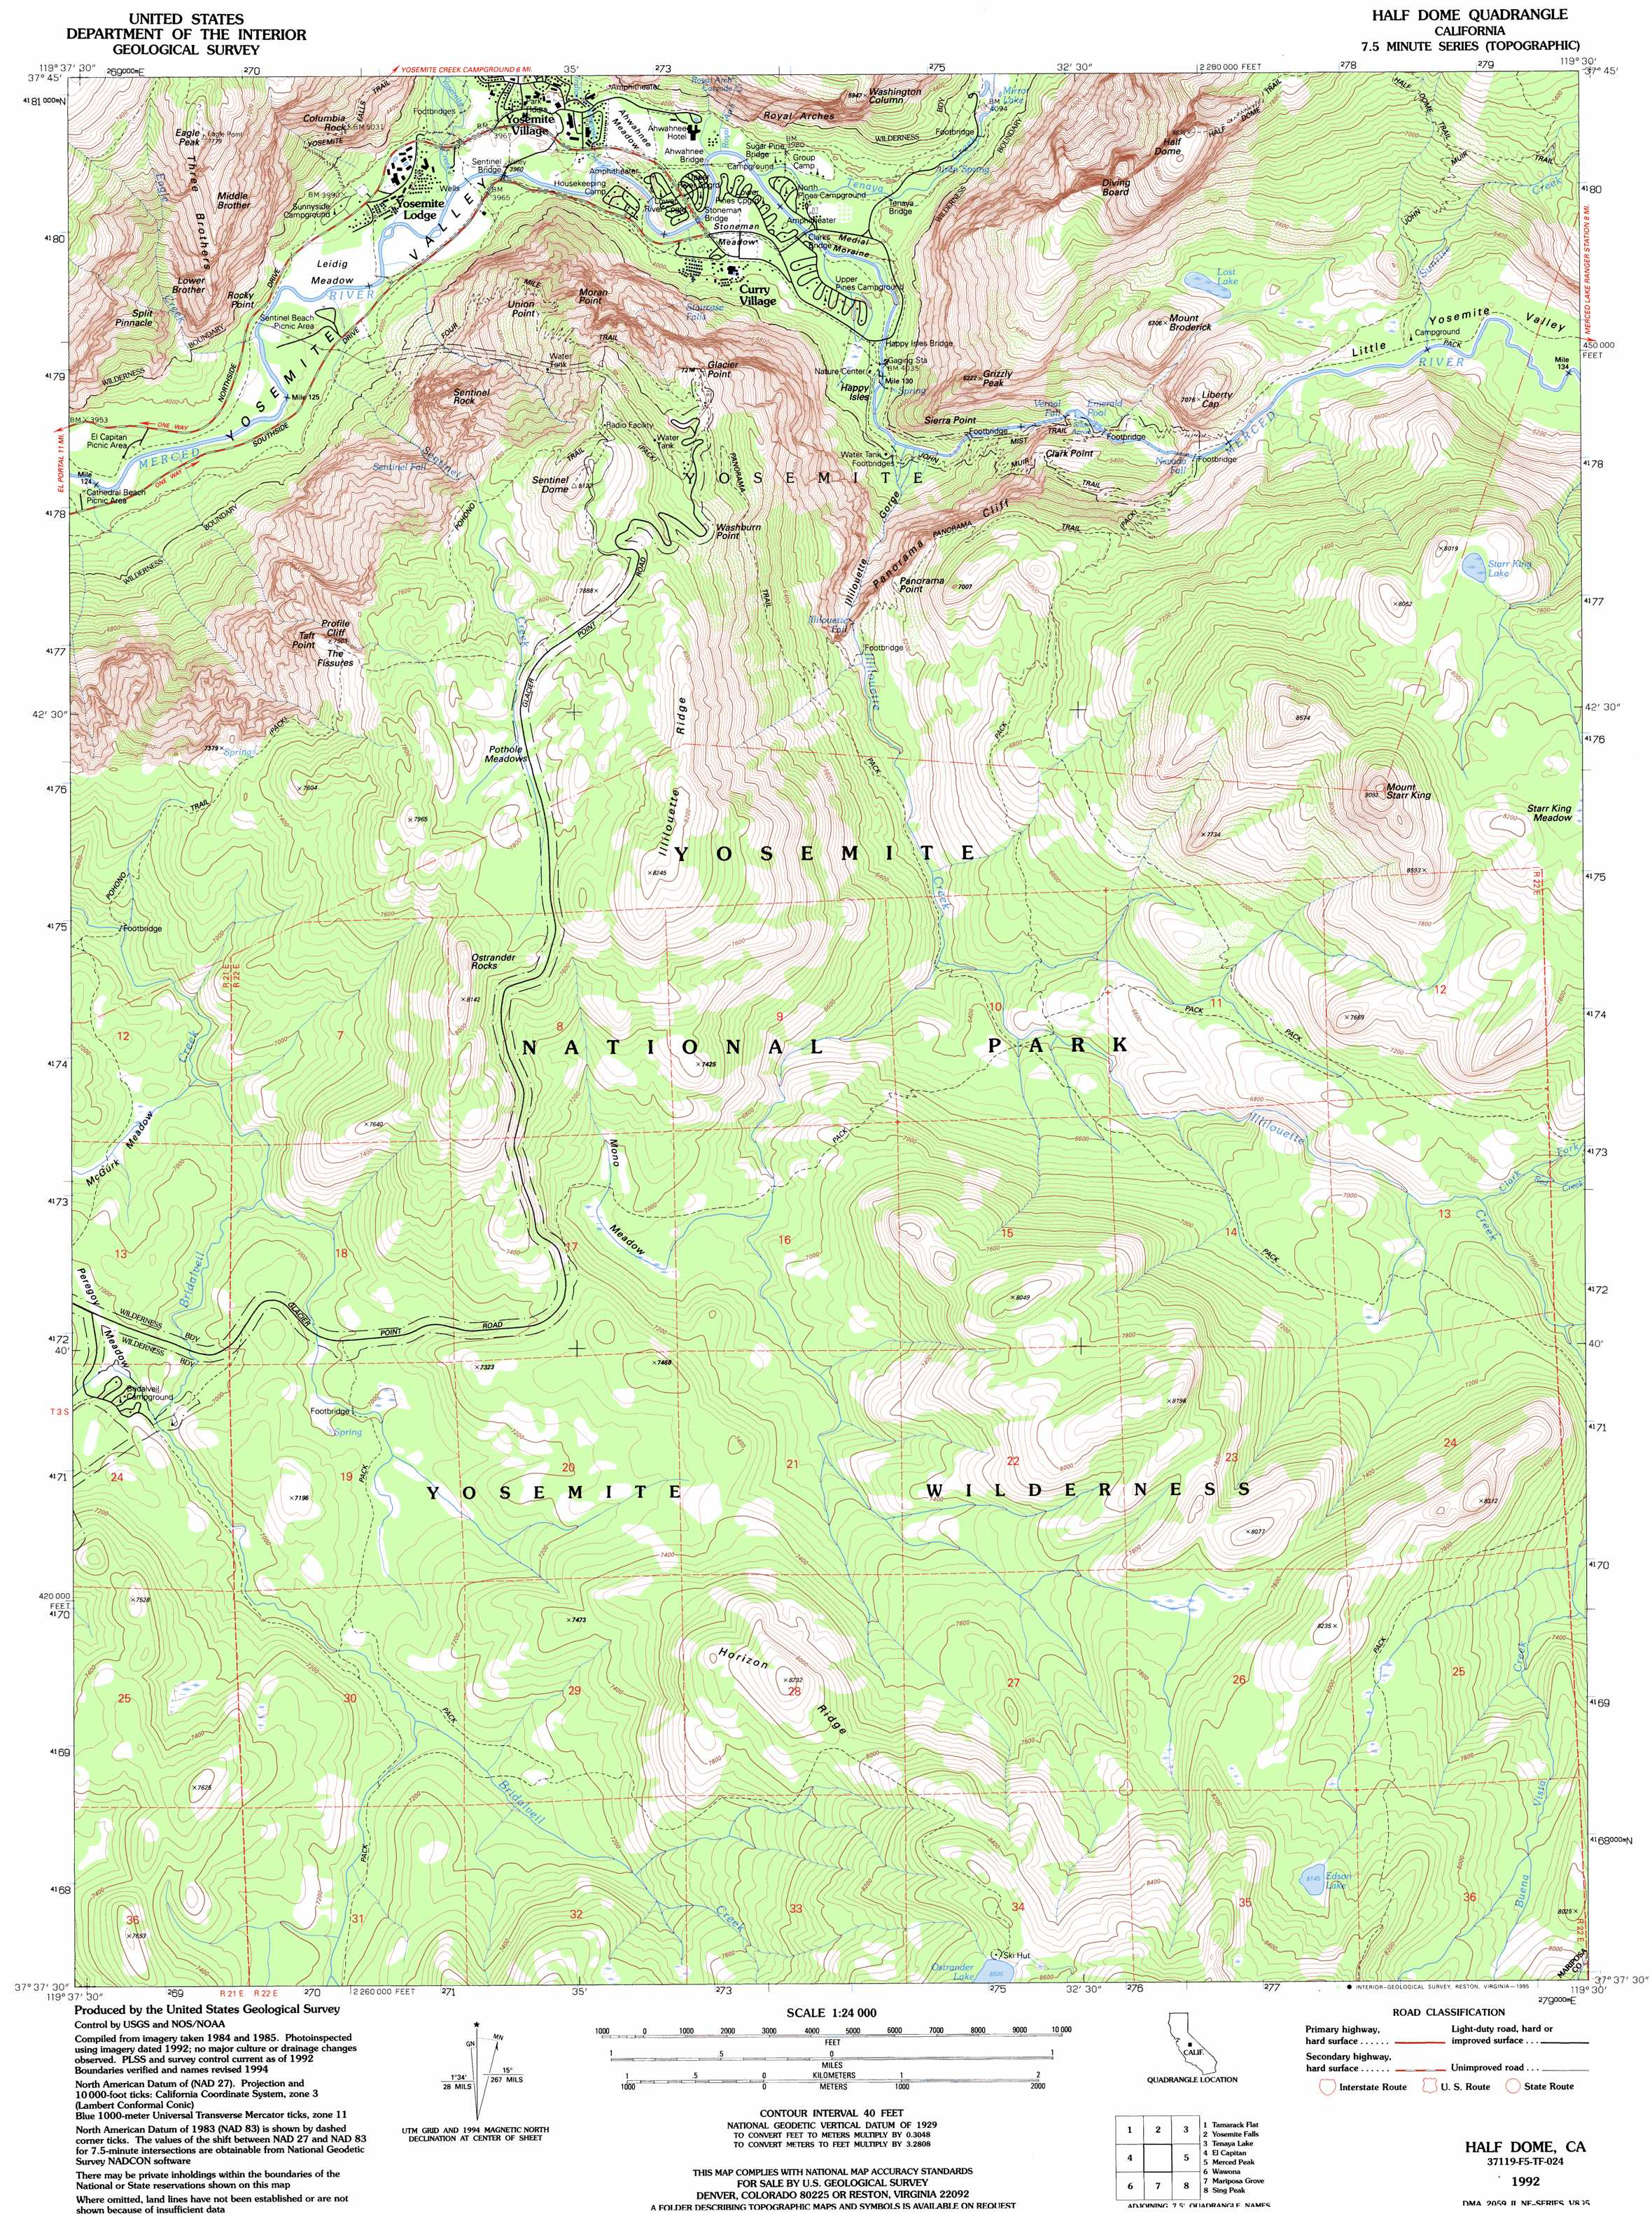 maps georgia usa with 37119f5 on First Candidate For United States in addition Terraformed Pla s And Moons Maps furthermore Boulder Location On The Us Map in addition Simple Map Of Us And Canada also Gallery.